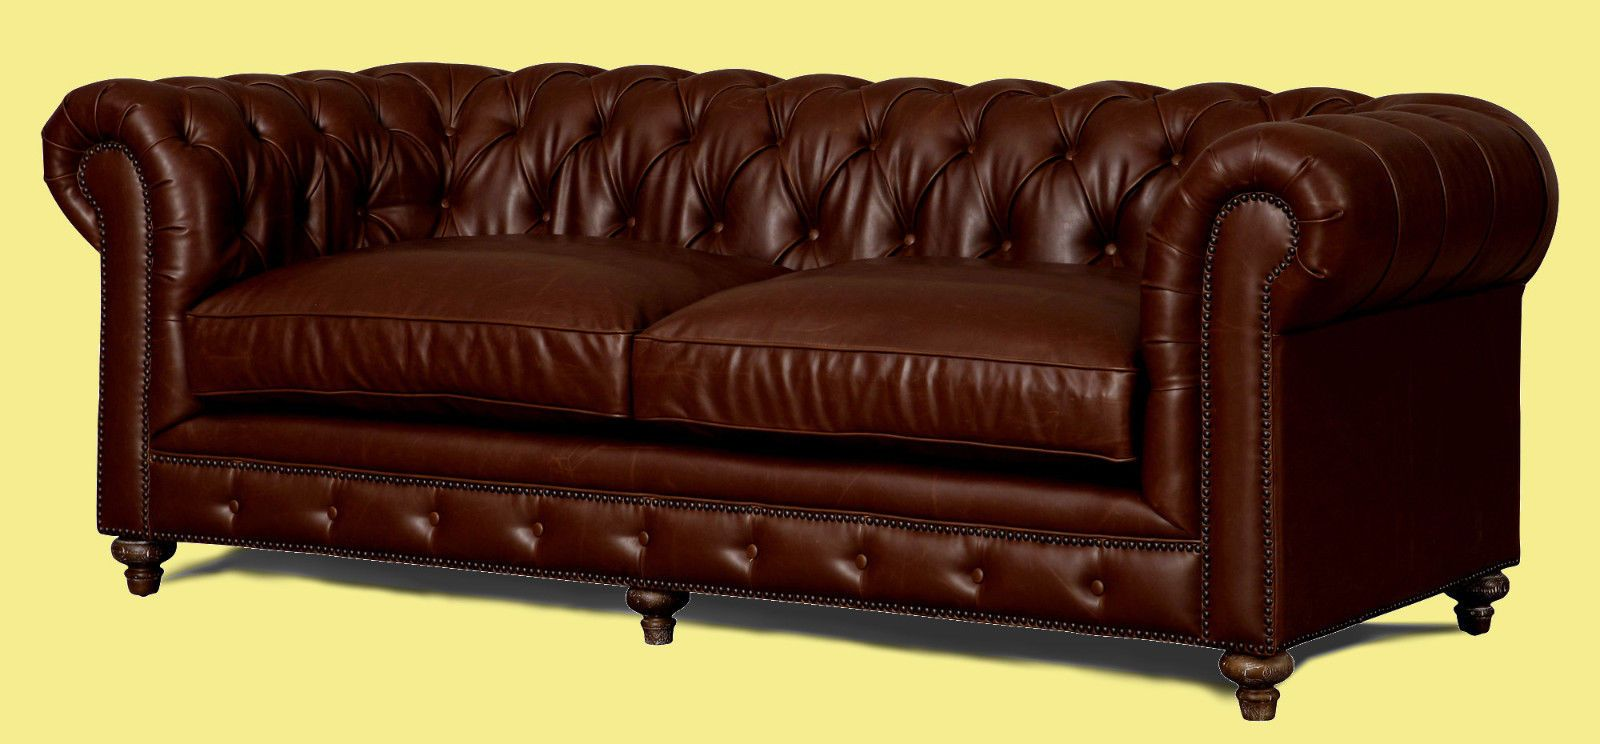 Brown Leather Chesterfield Sofa This Sofa Is Upholstered In Rich Brown High Quality Bonded Leather Features Deep Button Tufting Hardwood Frame Nailhead Trim